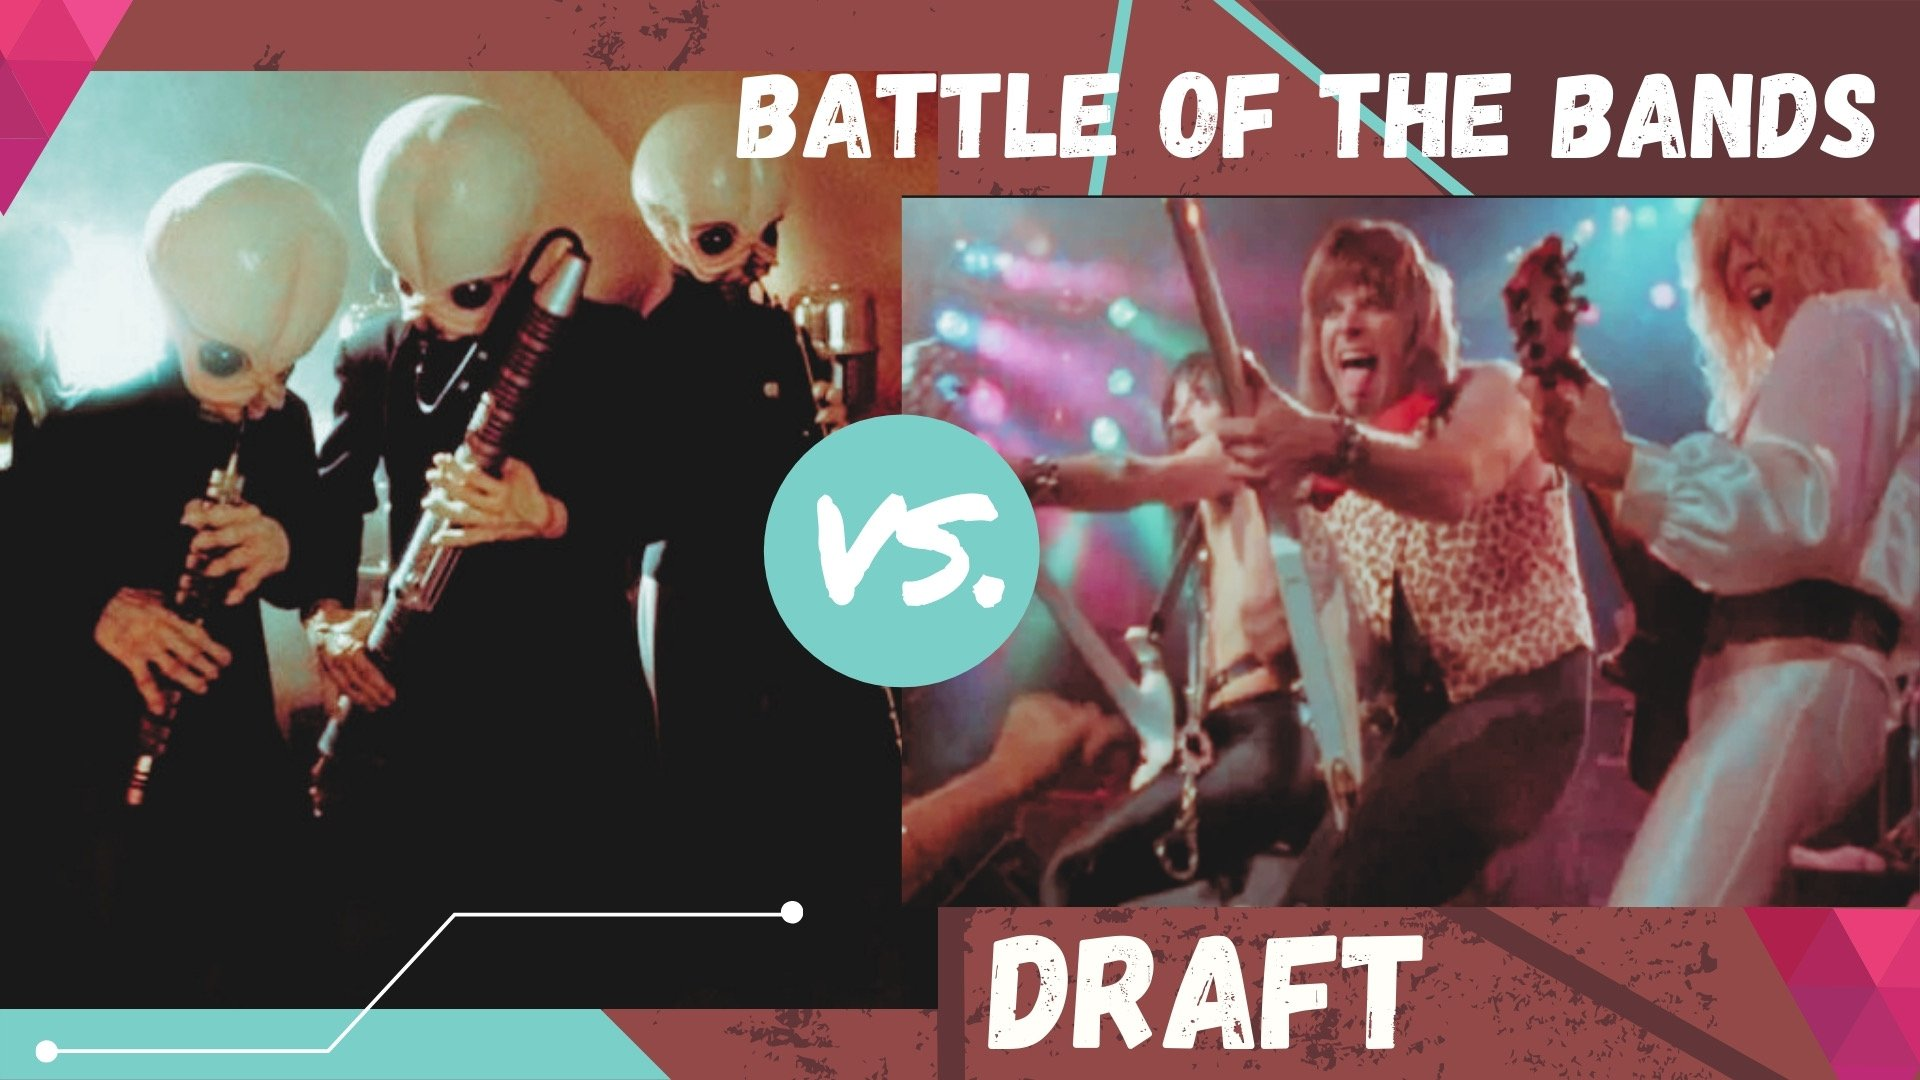 MMH Battle of the Bands Draft